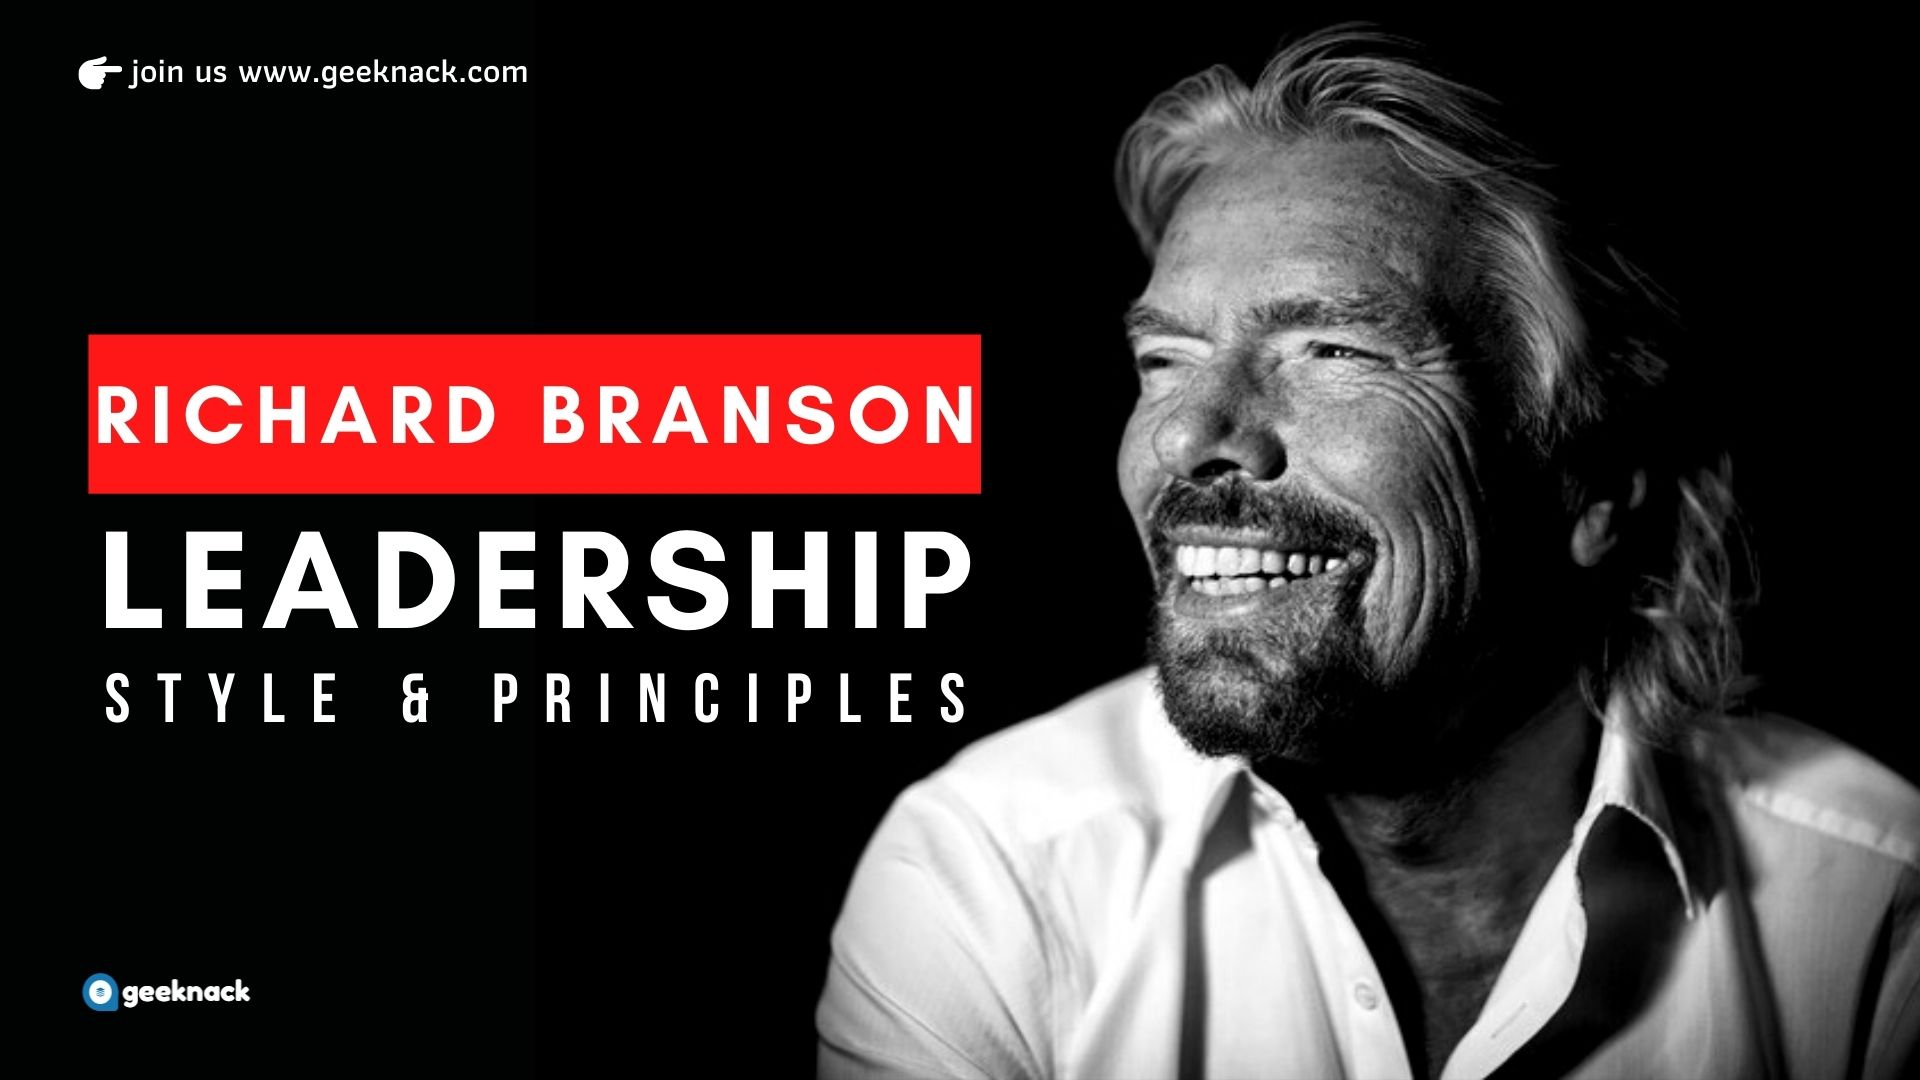 Richard Branson - Leadership Style & Principles